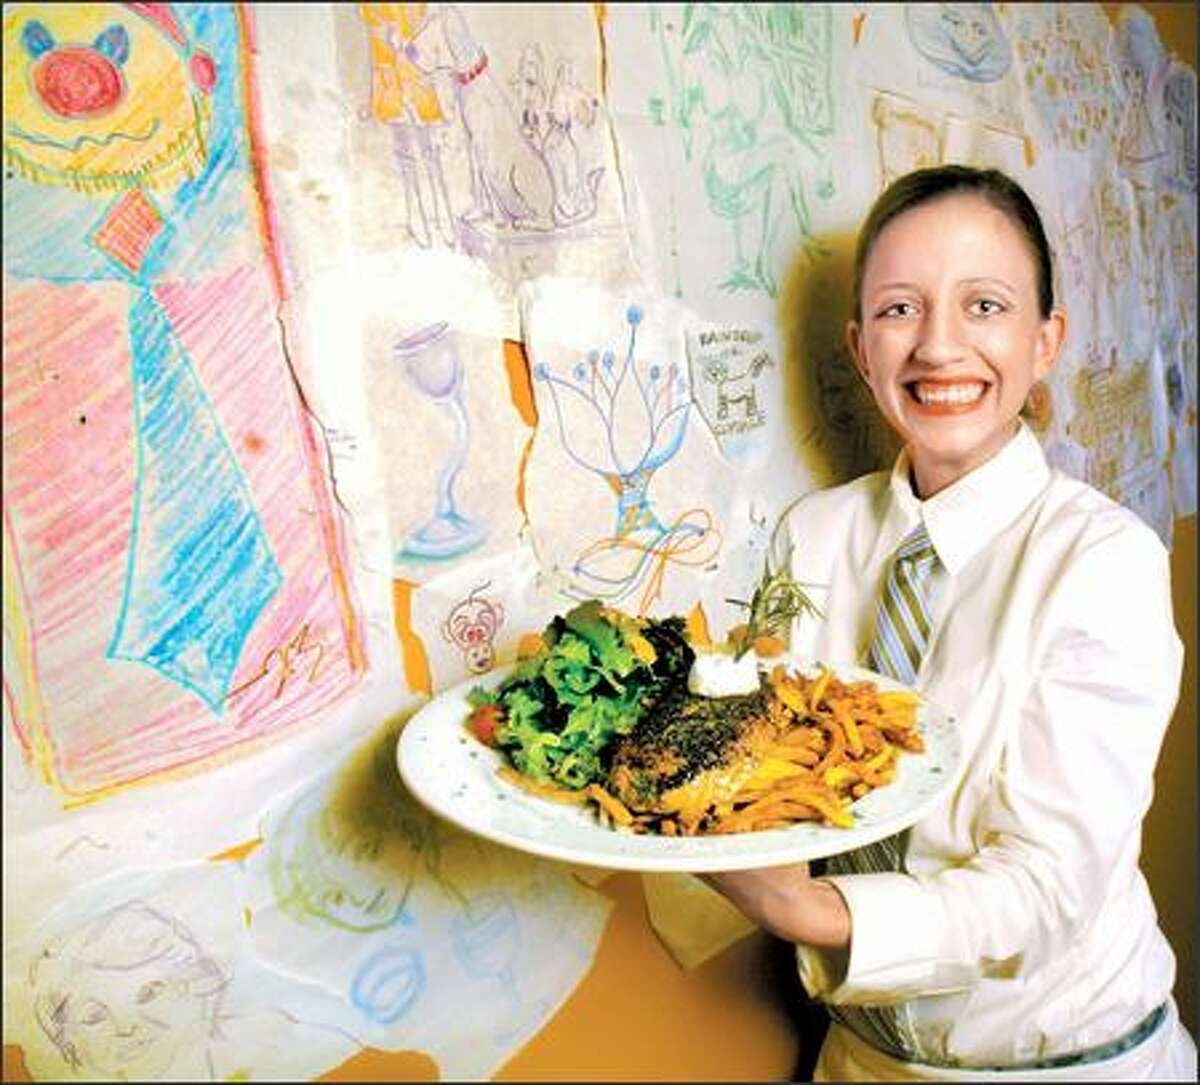 Standing next to a wall of customers' crayon art, Rachel Dreyer, a server at XO Bistro, holds a plate of steak frites with steak, salad and fries.